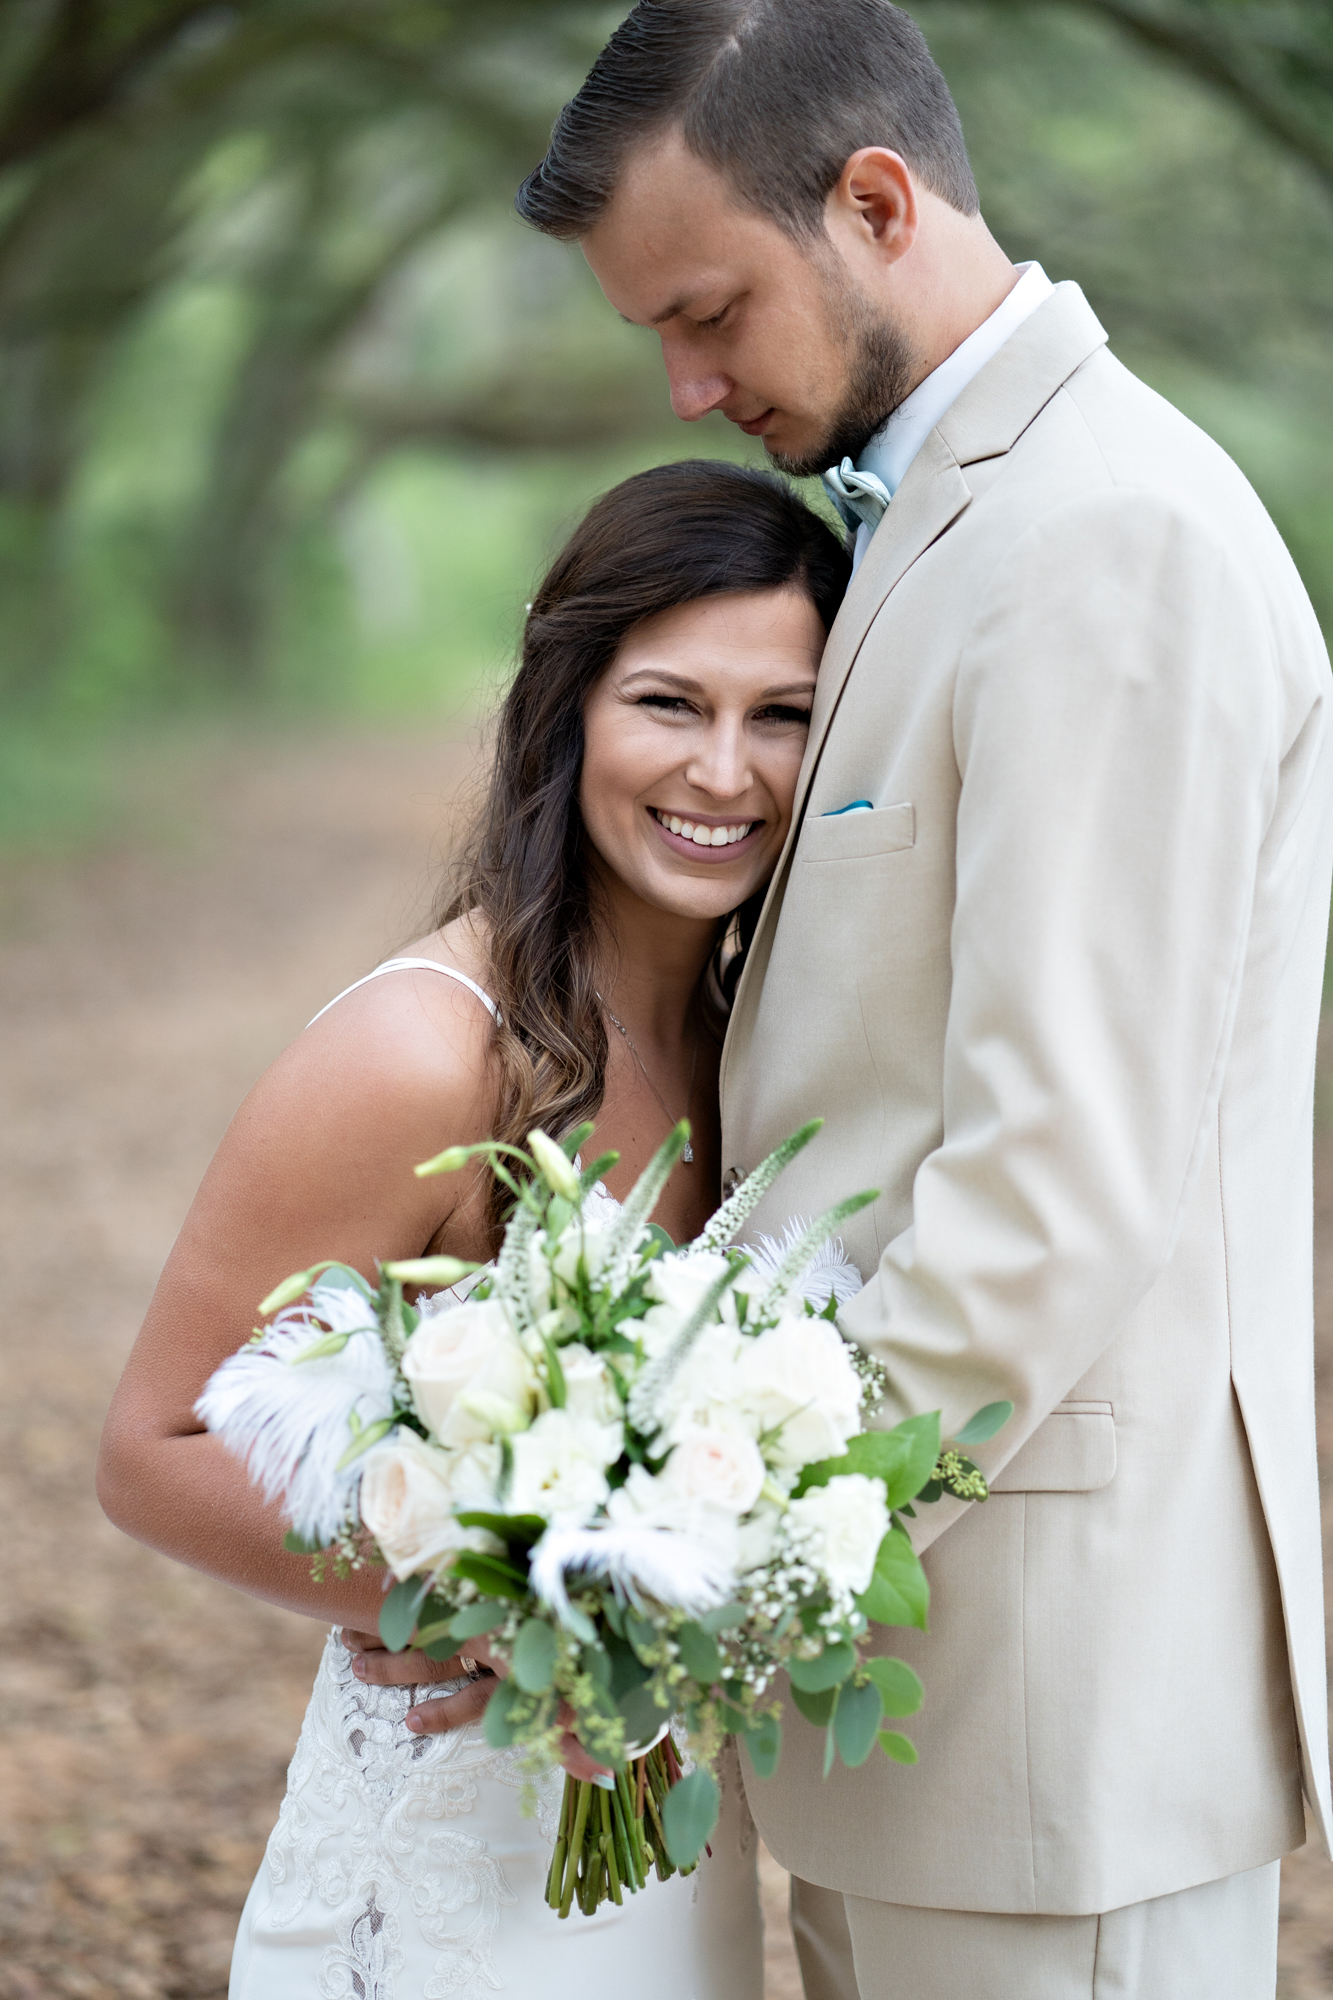 Fairhope-Alabama-Wedding-Photographers-Nick-Drollette-Photography-140.jpg